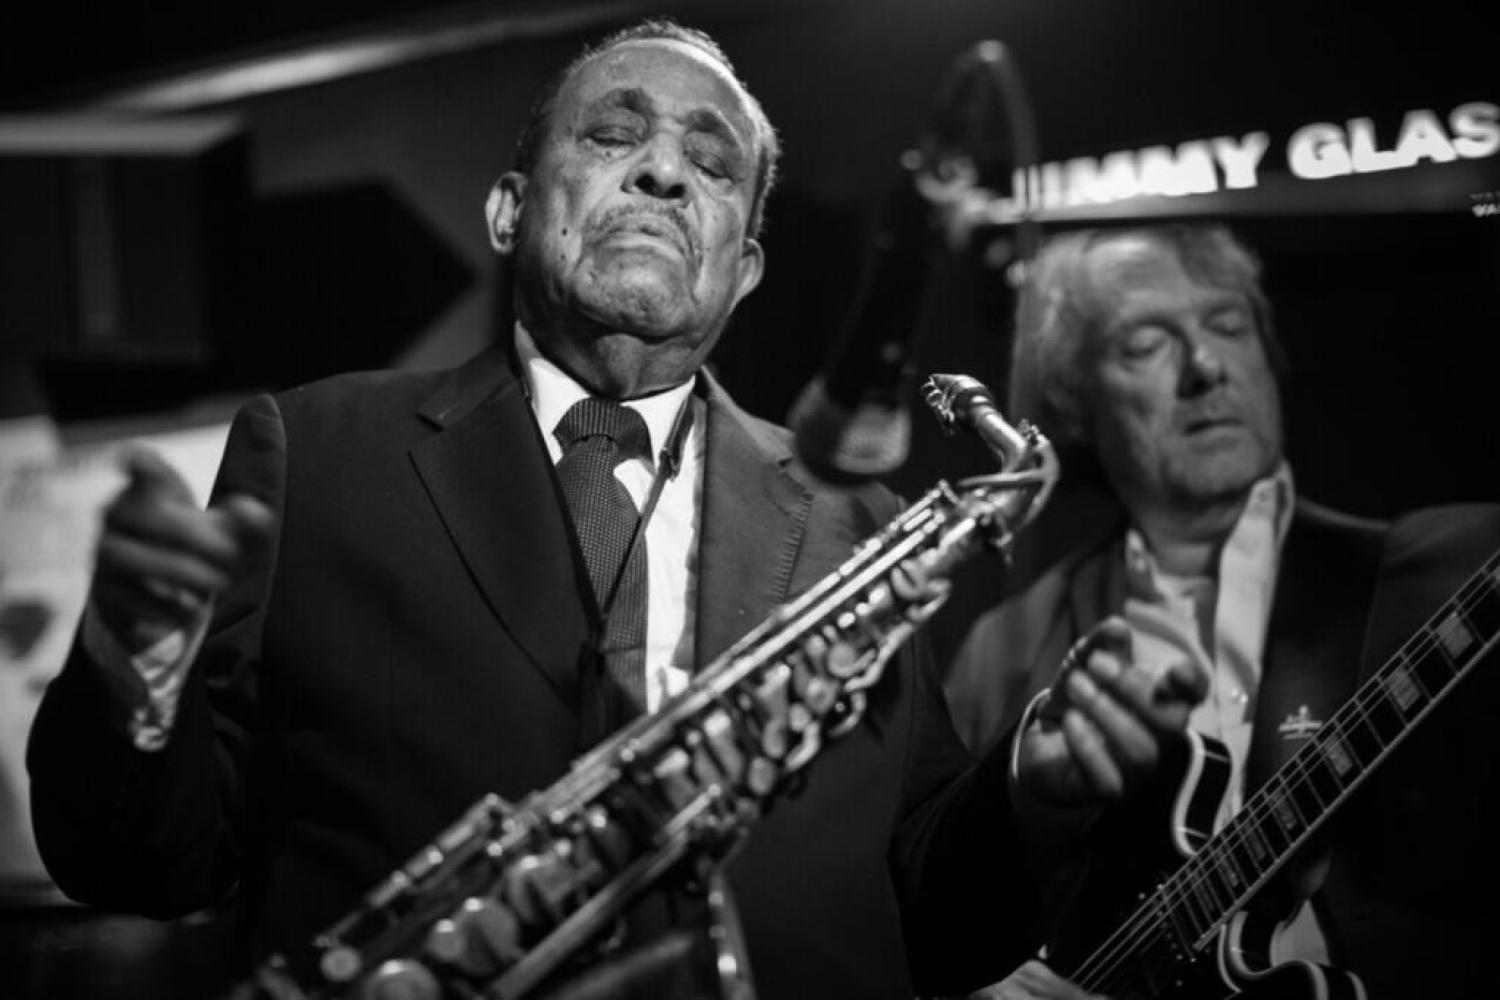 Lou Donaldson en Jimmy Glass